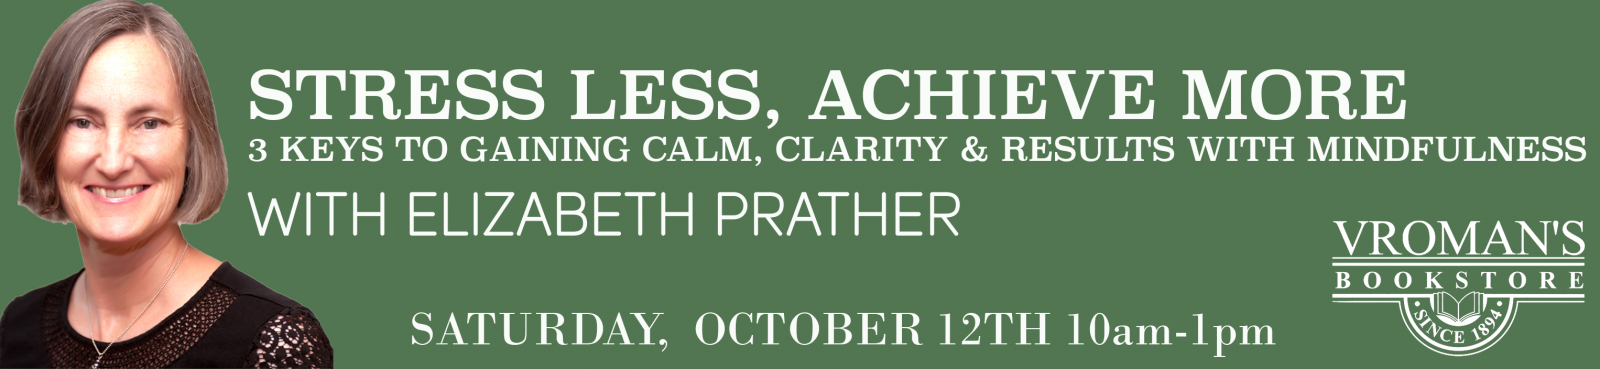 Stress Less, Achieve More Mindfulness Workshop with Elizabeth Prather, Saturday October 12 from 10am to 1pm